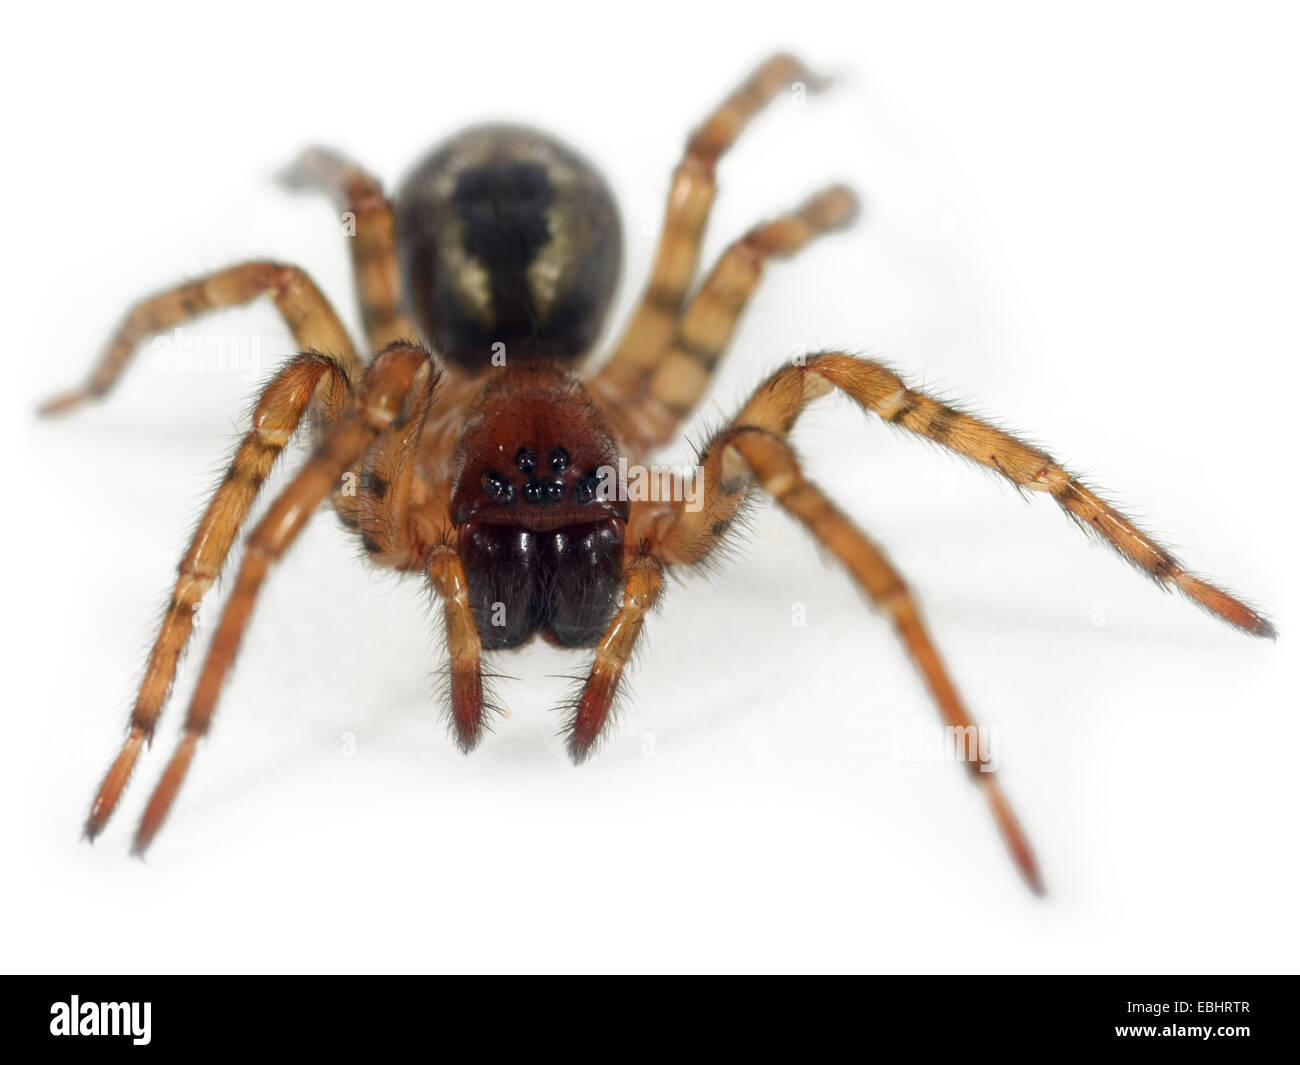 A Window lace-weaver (Amaurobius fenestralis) on white background. Window lace-weaver spiders are part of family Stock Photo